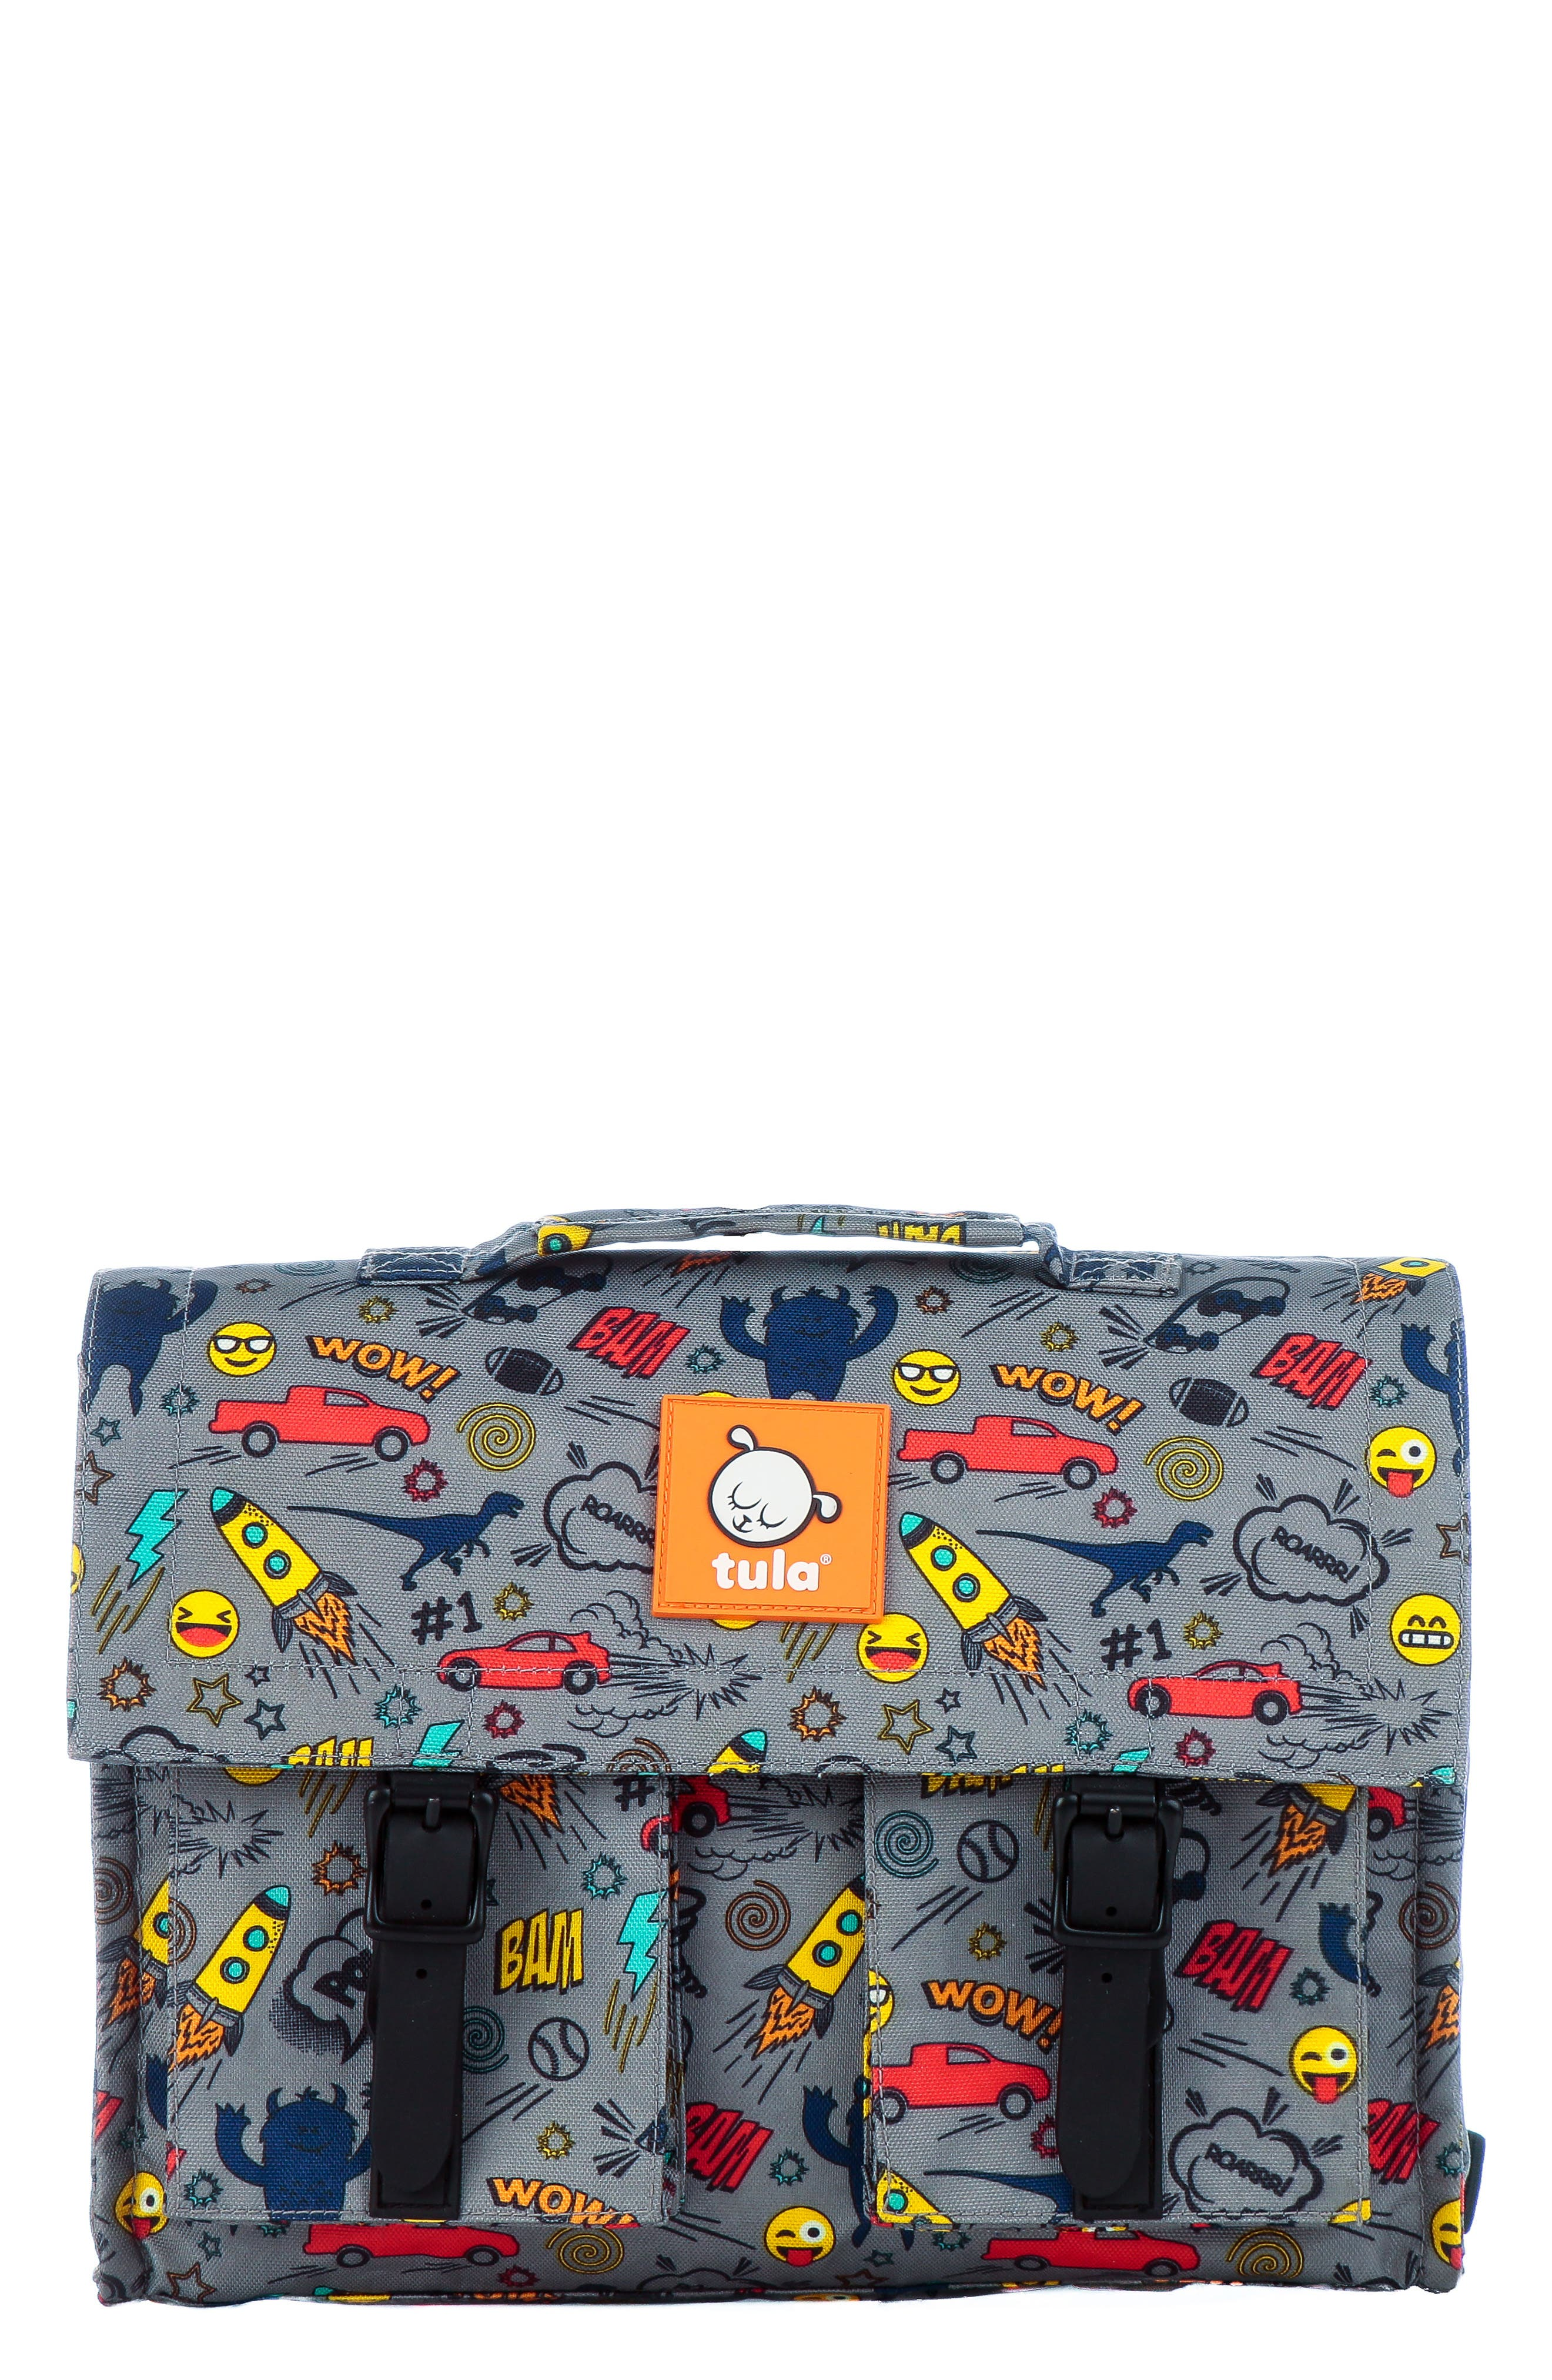 Stamps Backpack,                             Main thumbnail 1, color,                             020